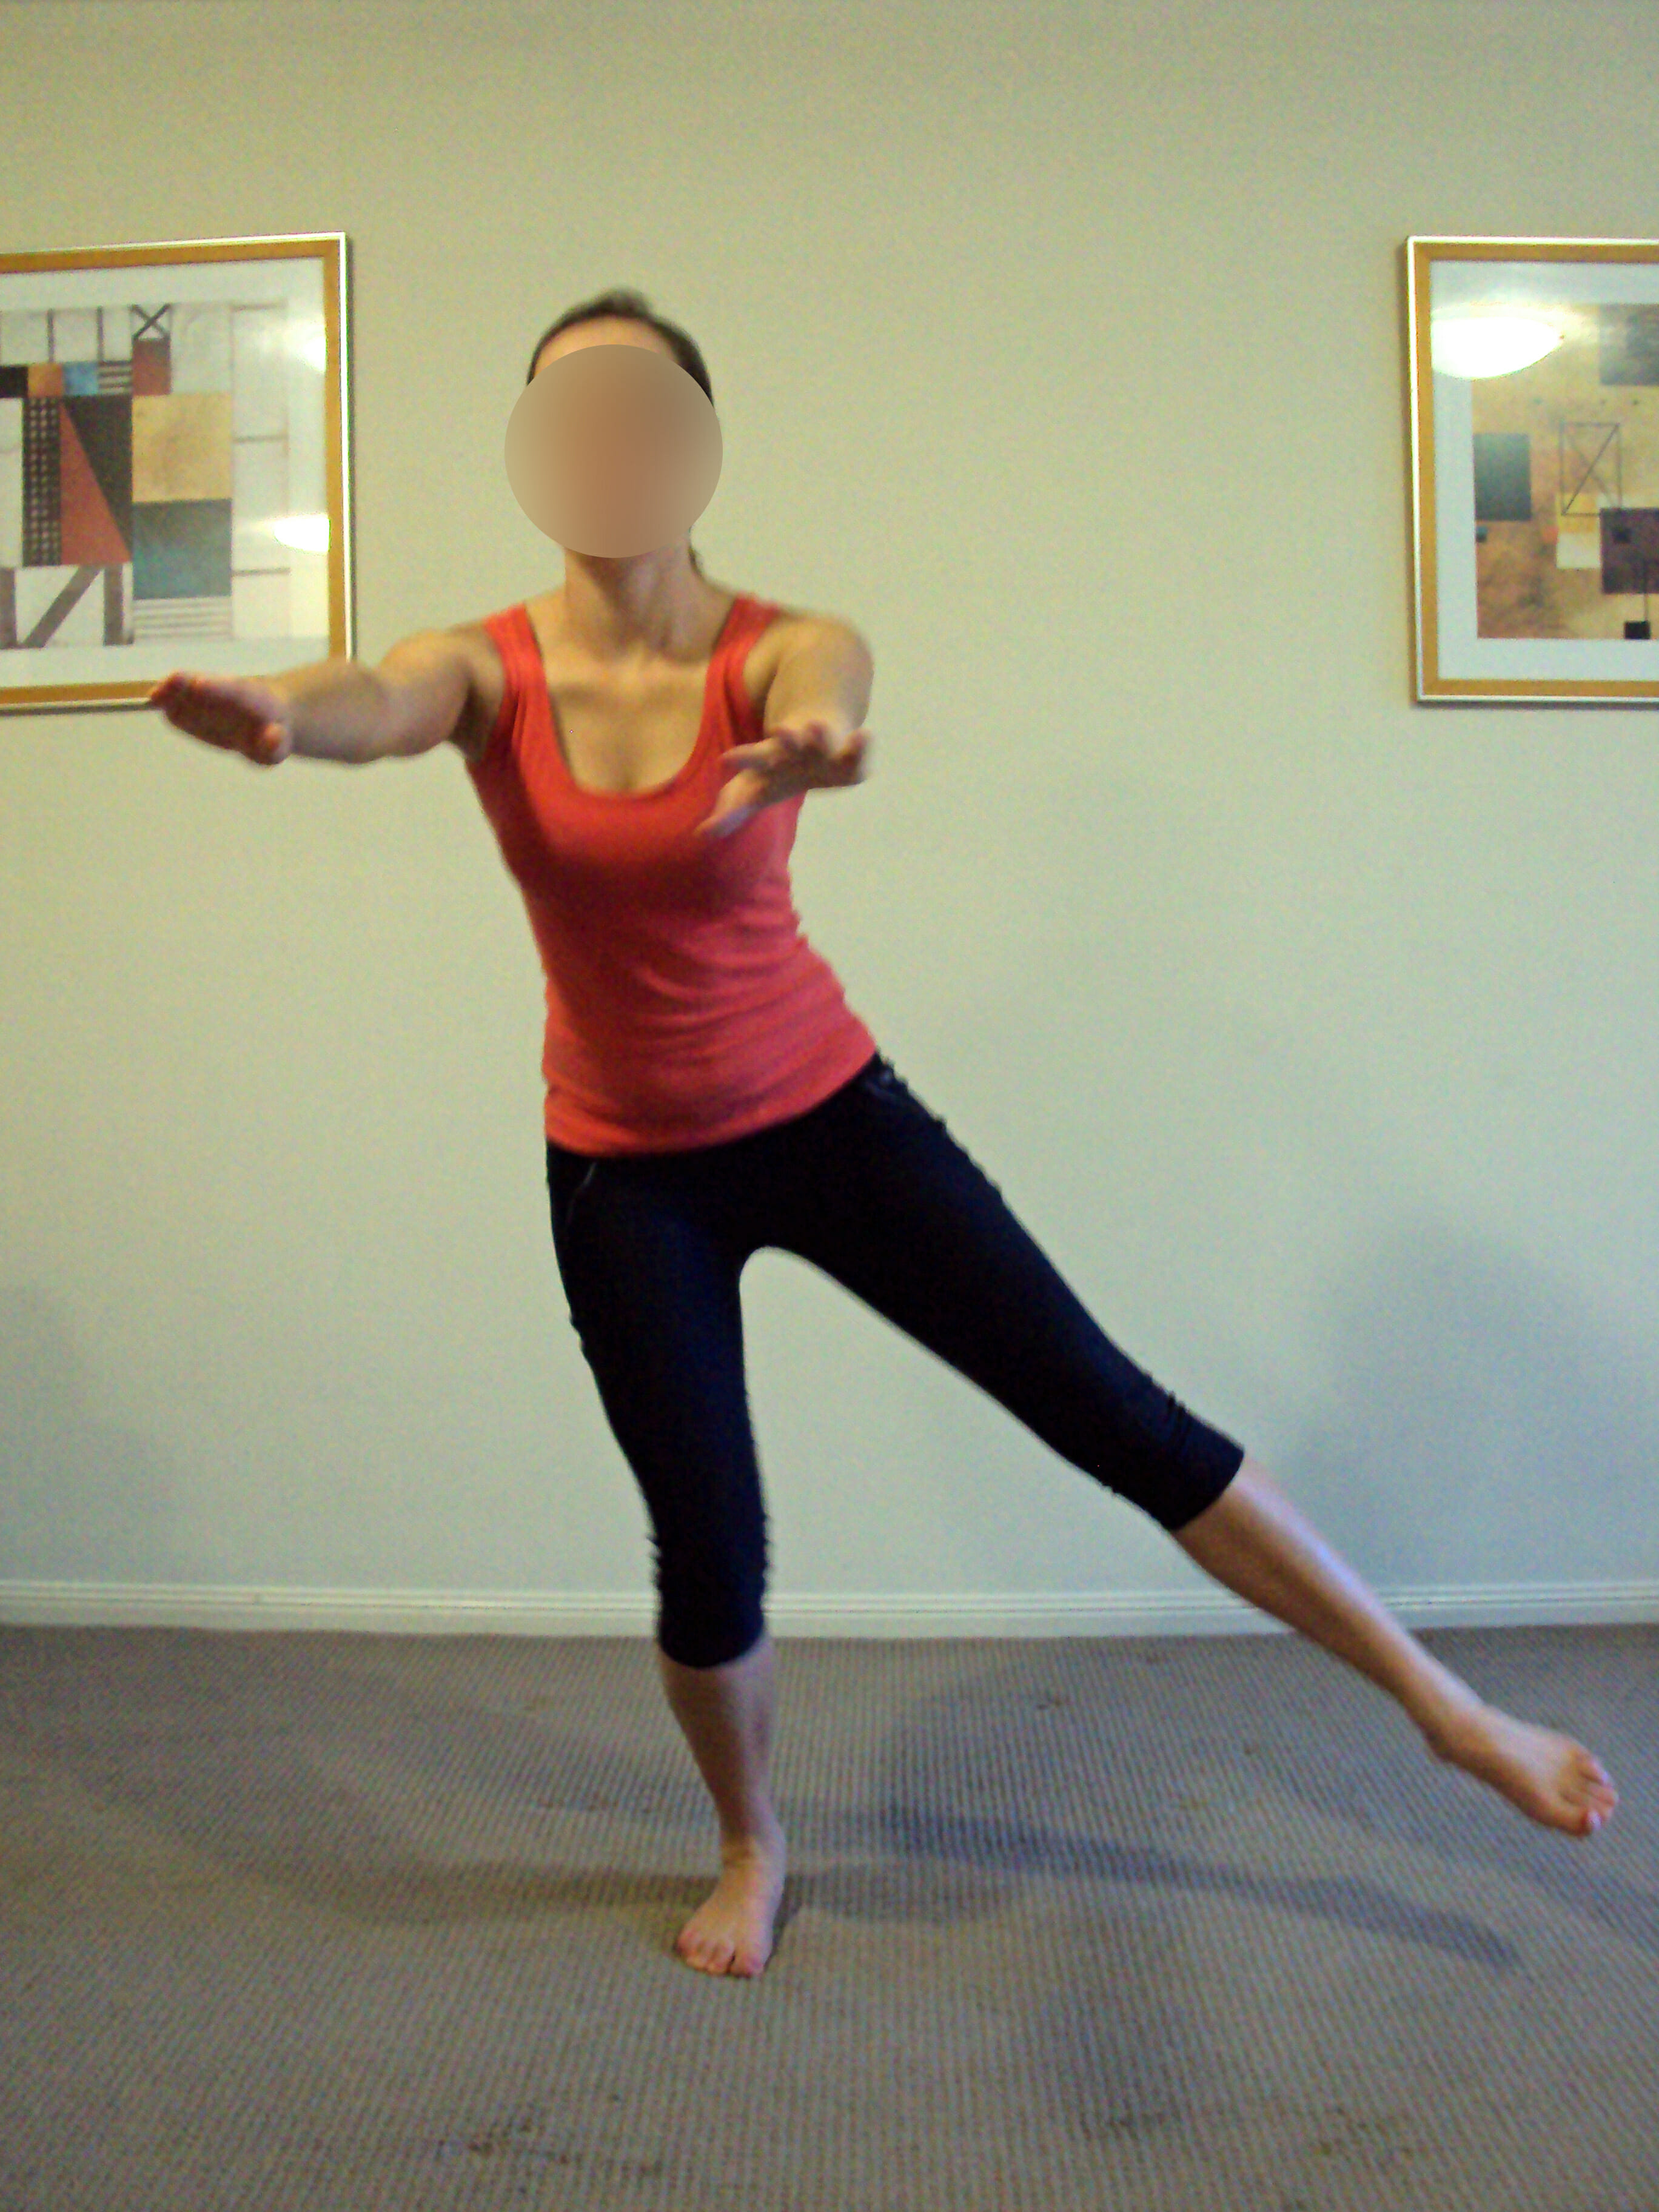 Single leg Squat, Glut Med activation - hip stability and strength